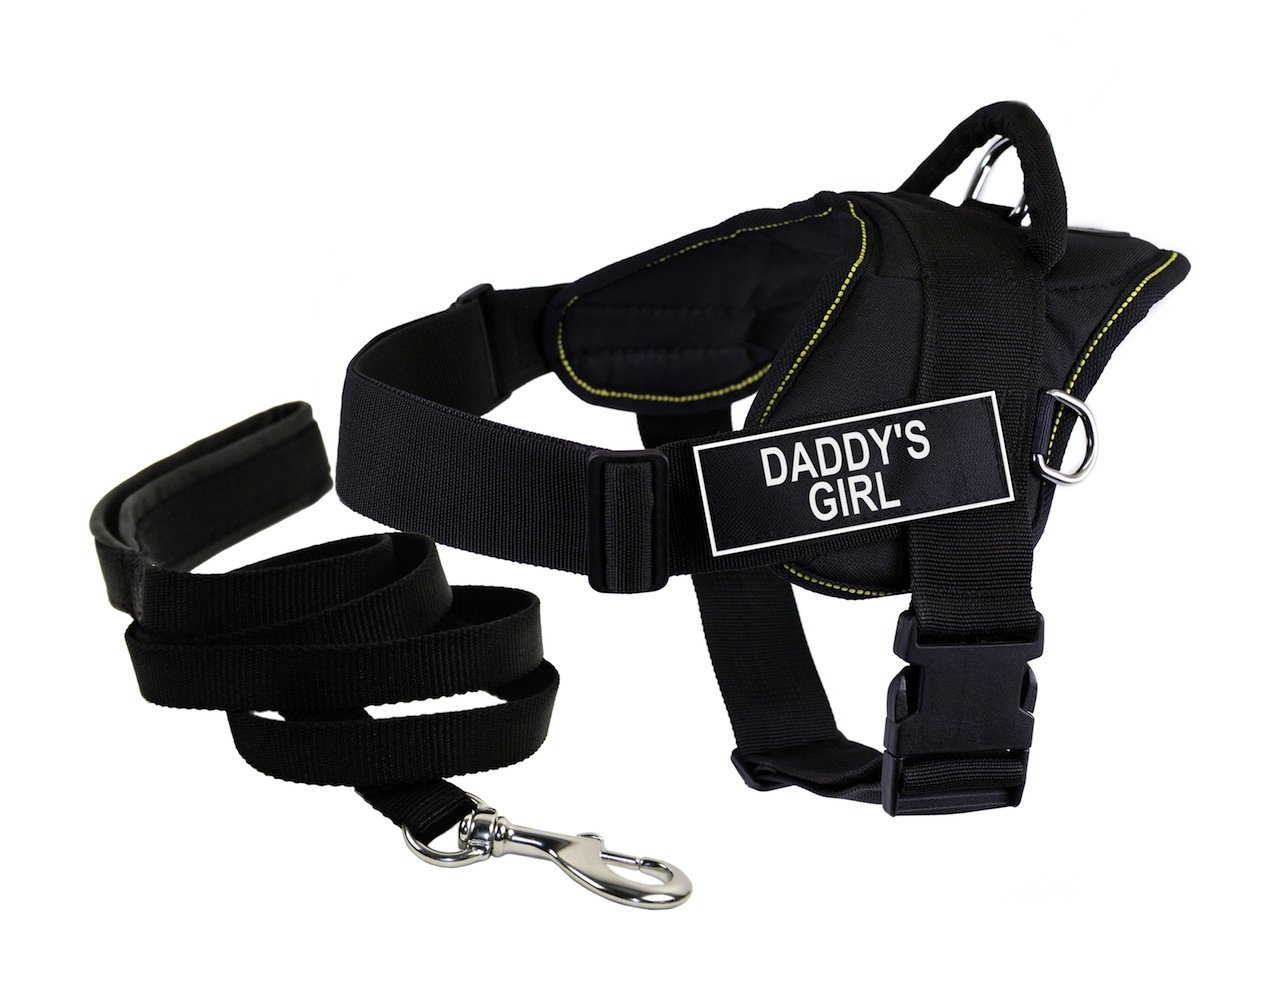 Dean & Tyler's DT Fun Daddy's Girl  Harness, Small, with 6 ft Padded Puppy Leash.